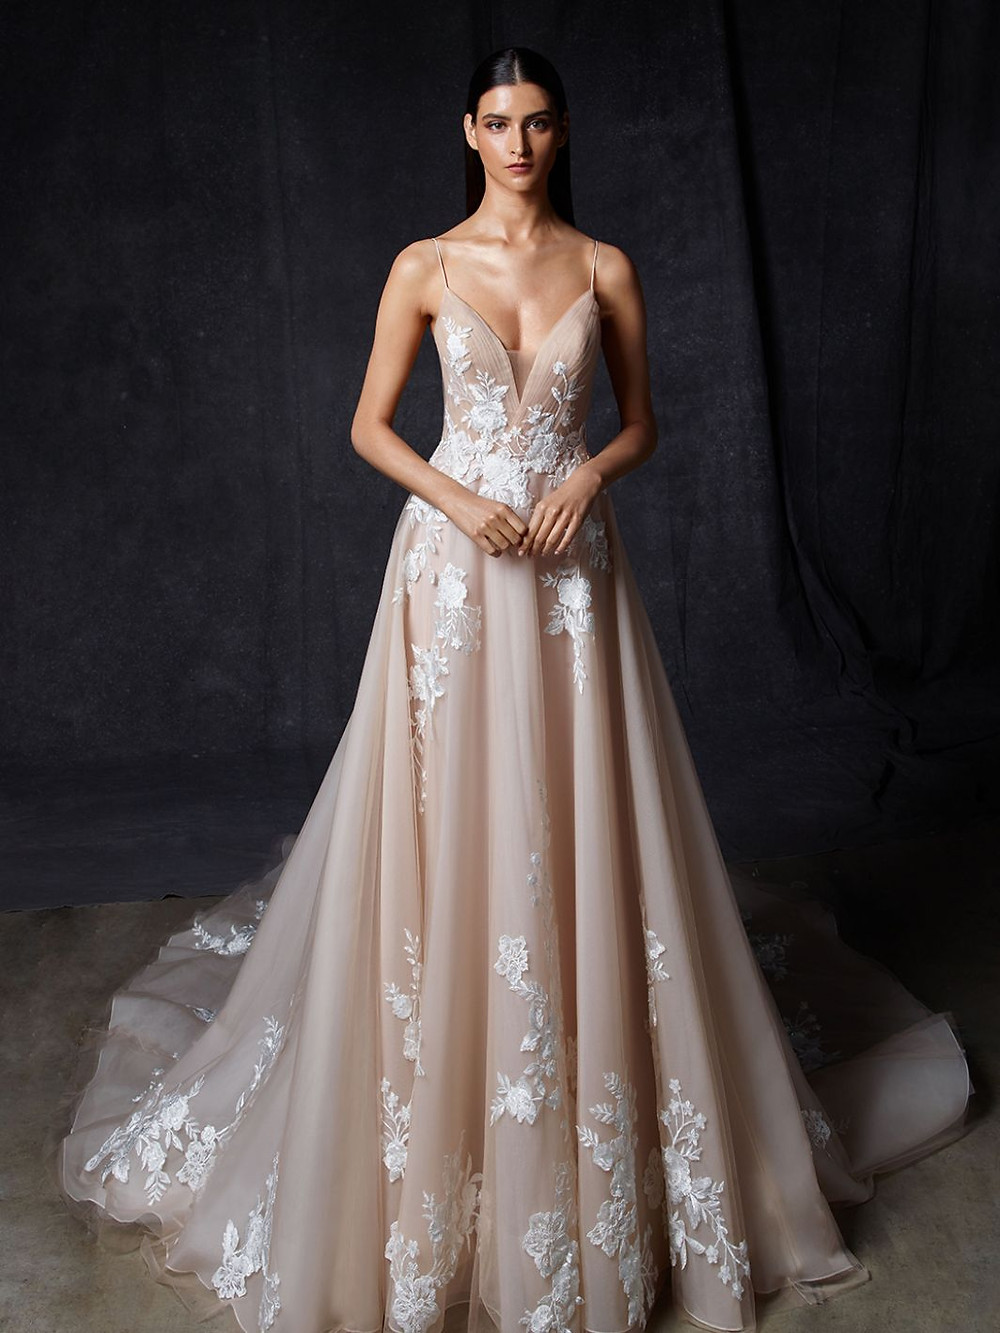 An Enzoani blush, tulle ball gown wedding dress with lace, thin straps and a long train